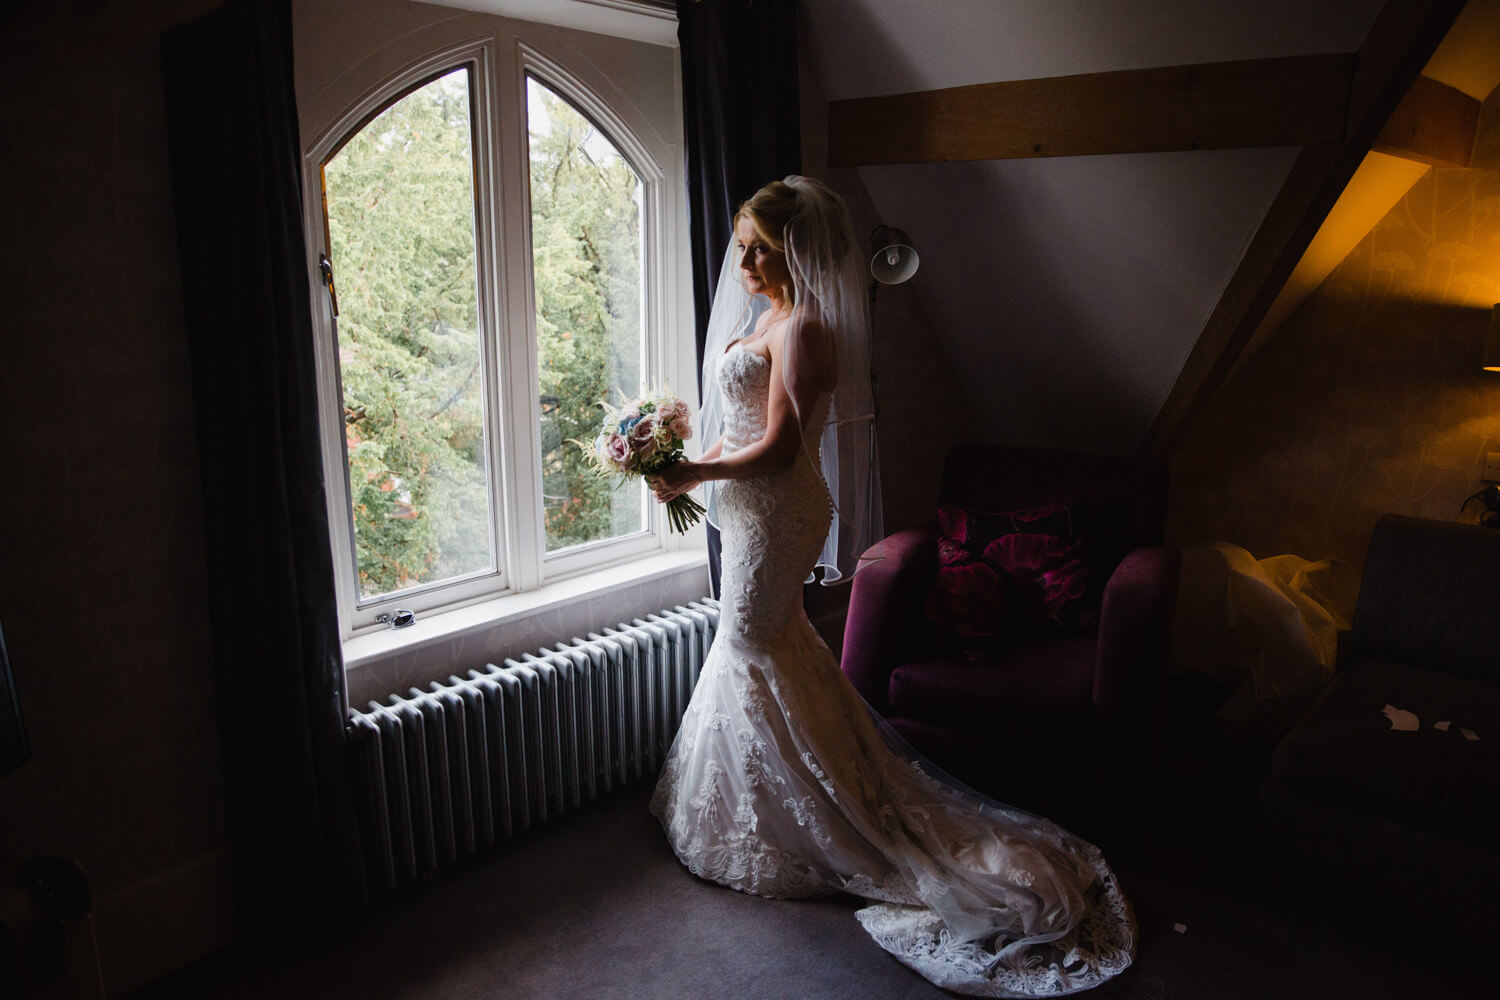 portrait photograph of bride in bridal suite window holding bouquet of flowers